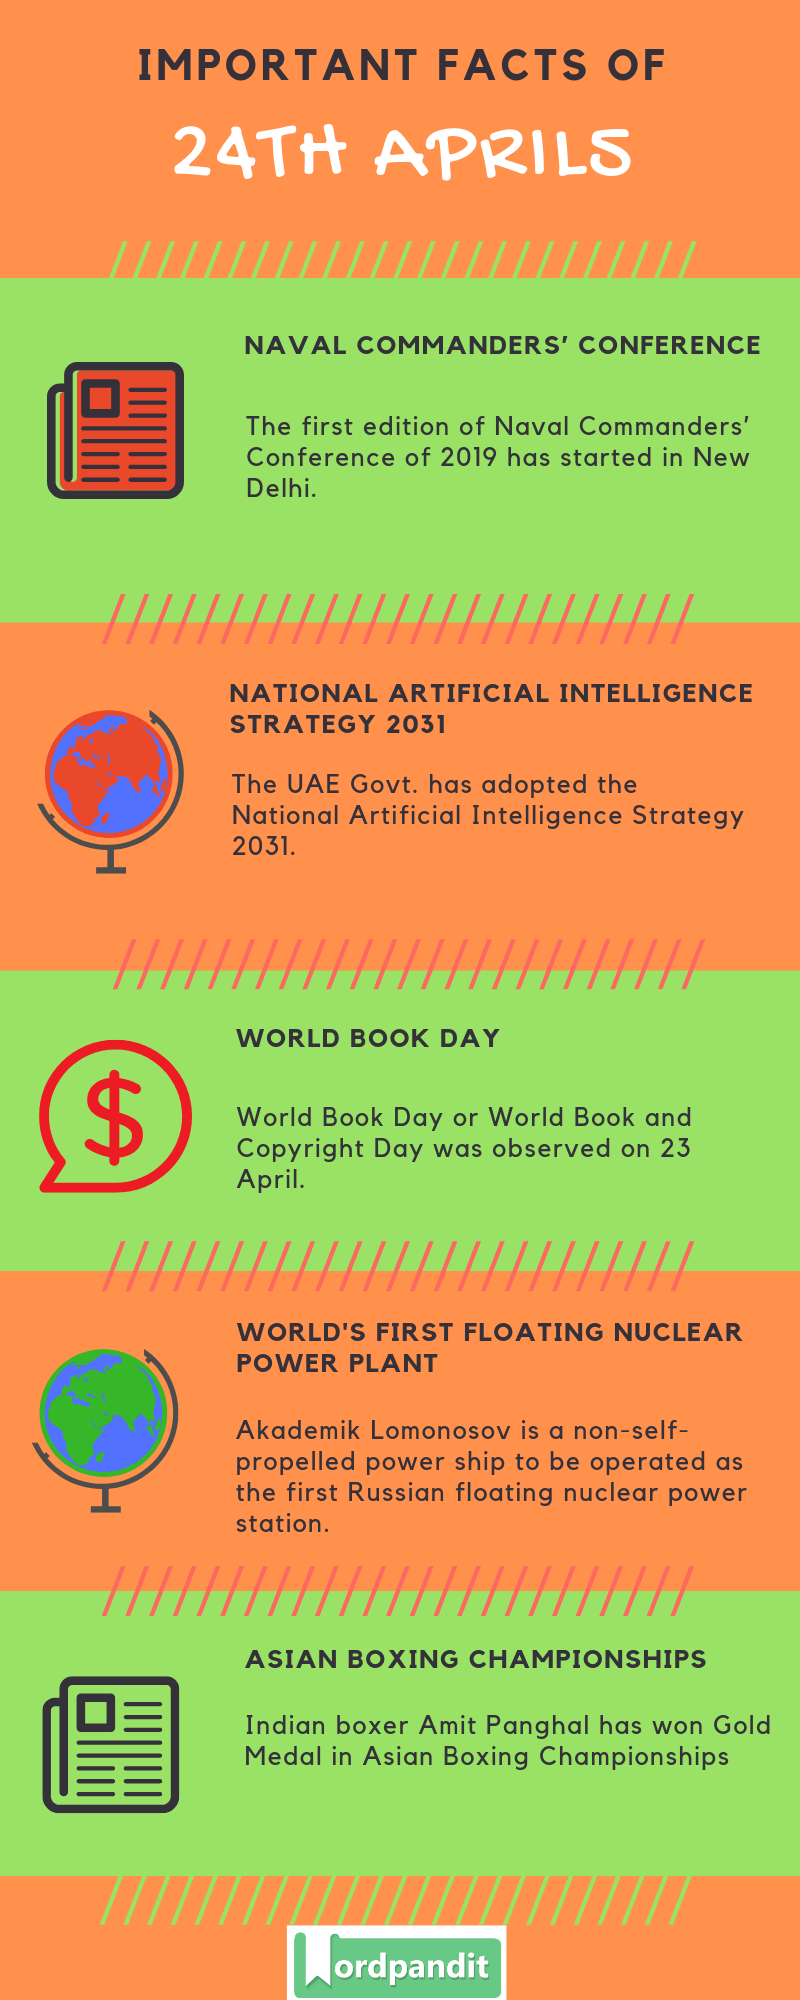 Daily Current Affairs 24 April 2019 Current Affairs Quiz 24 April 2019 Current Affairs Infographic